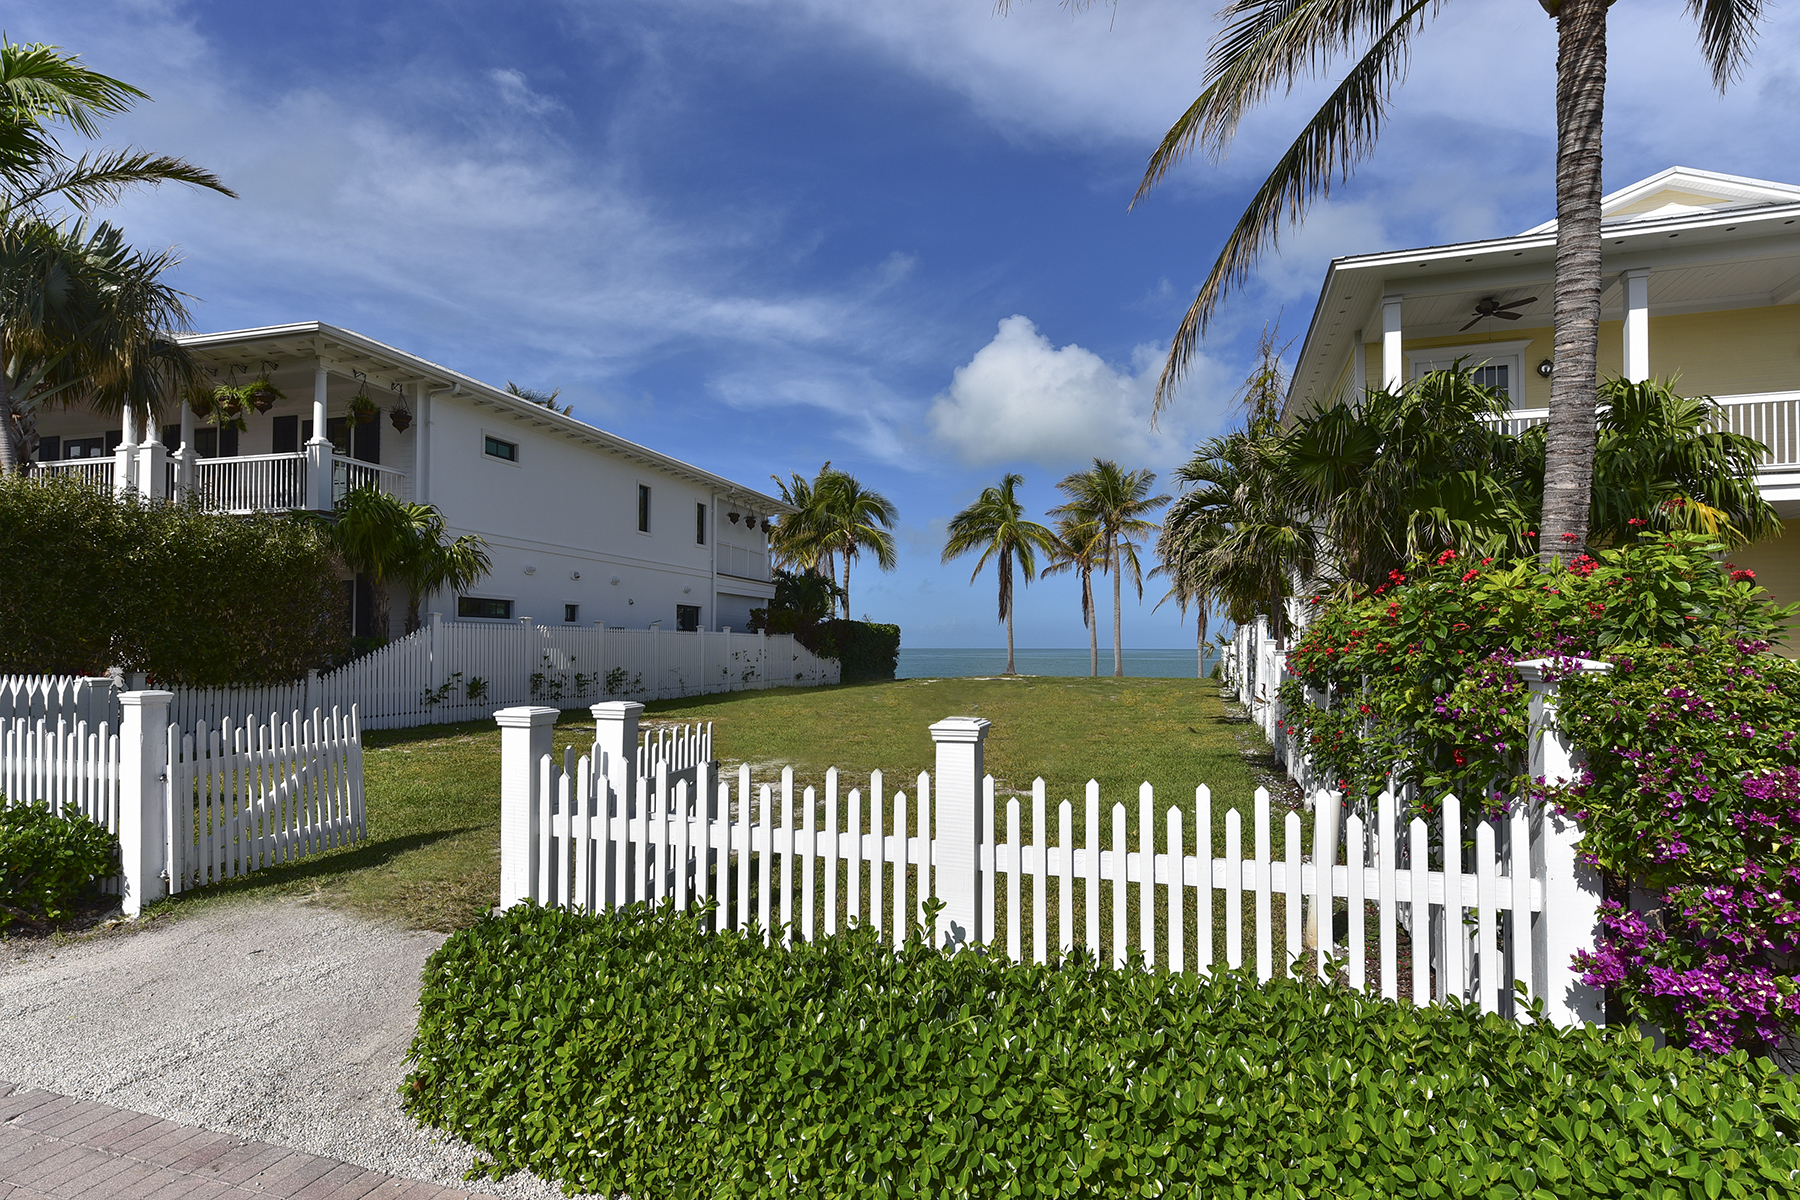 Terreno por un Venta en Open Water Views on Sunset Key 2 Sunset Key Drive Key West, Florida 33040 Estados Unidos